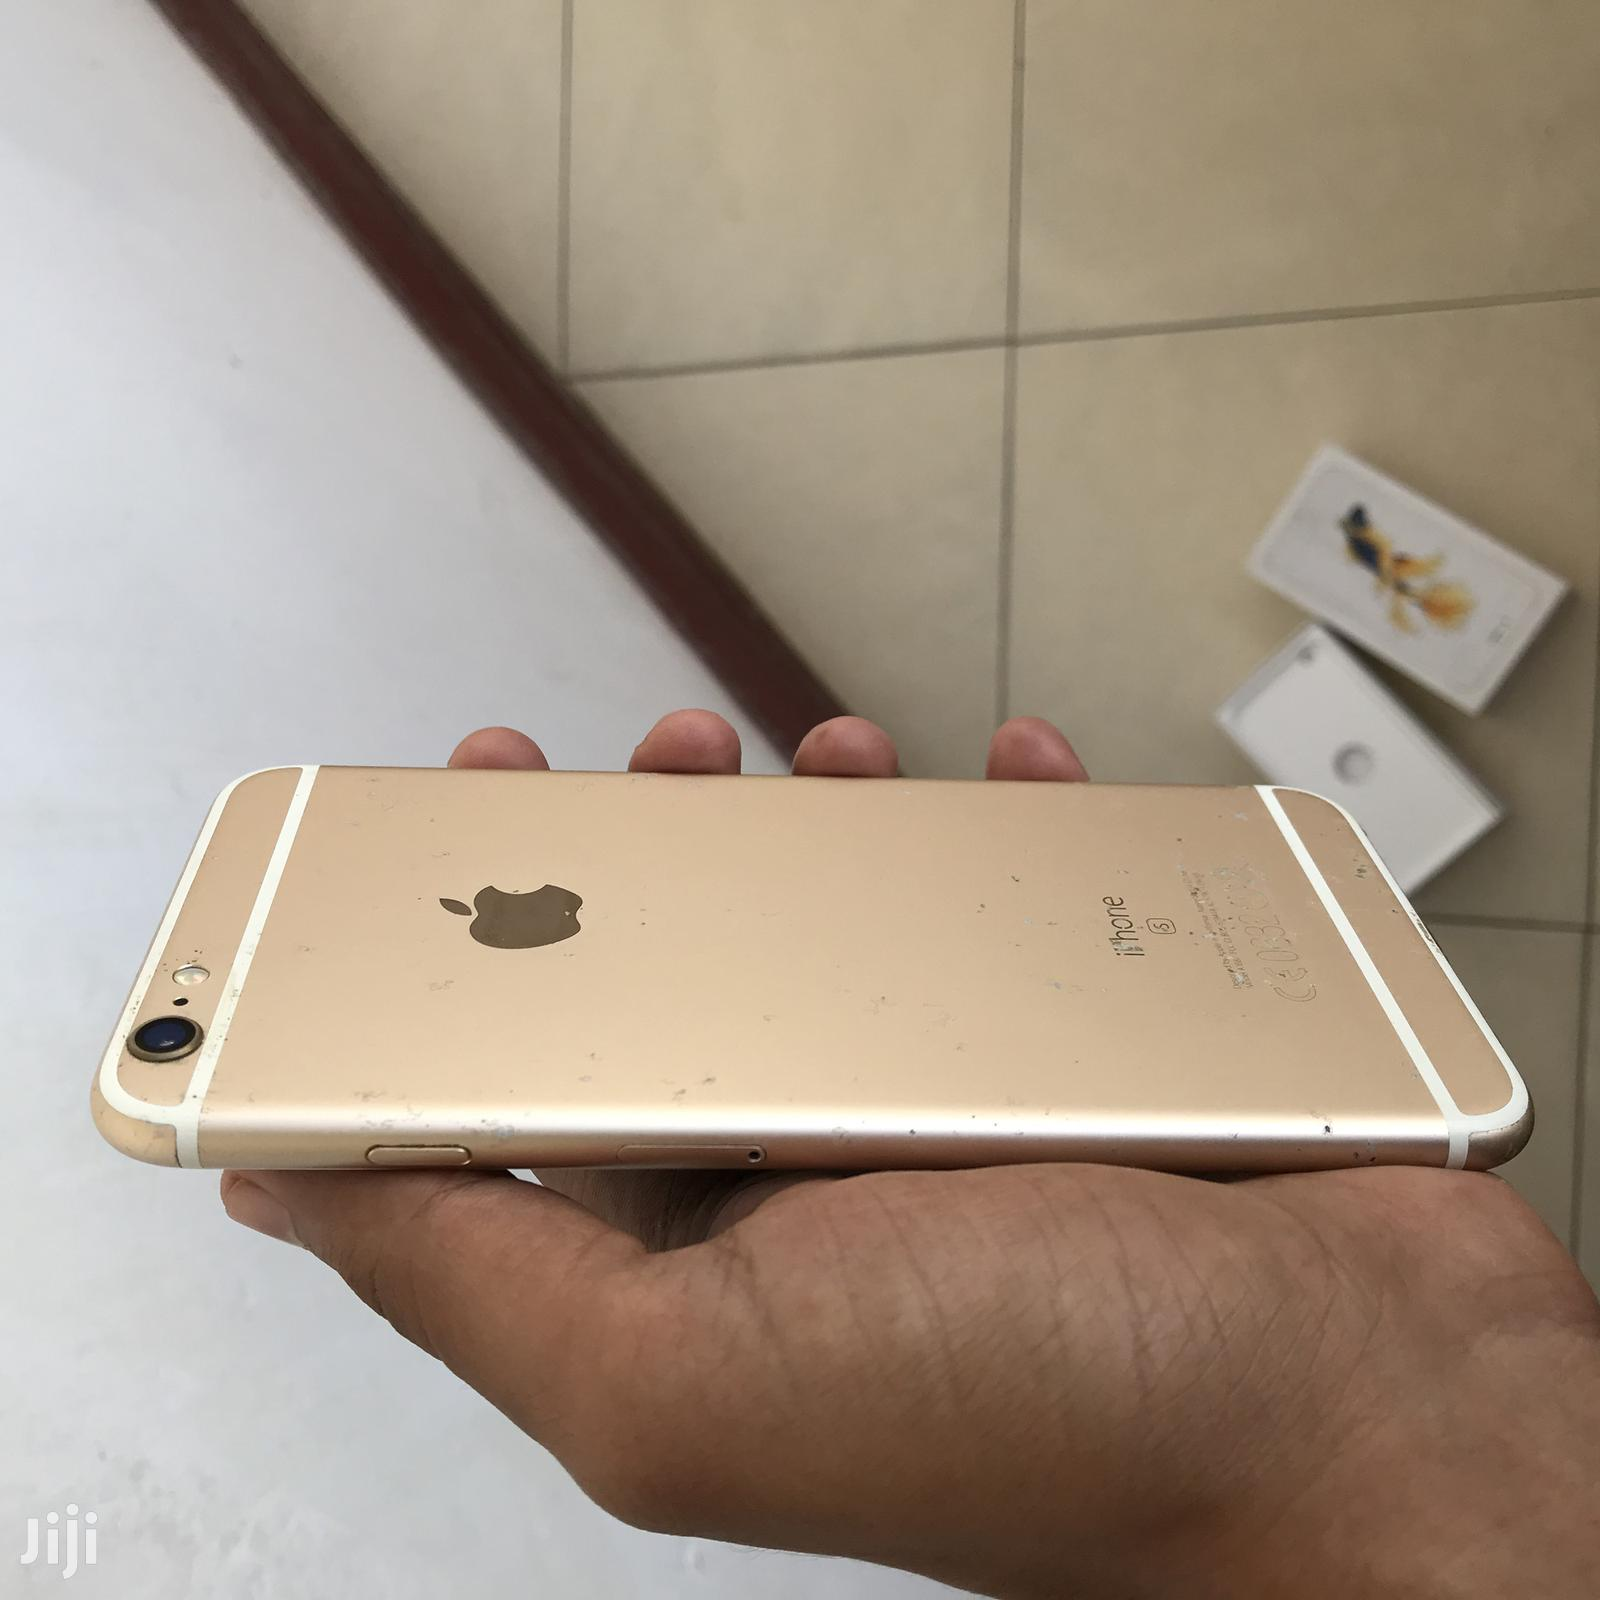 Archive: Apple iPhone 6s Plus 16 GB Gold